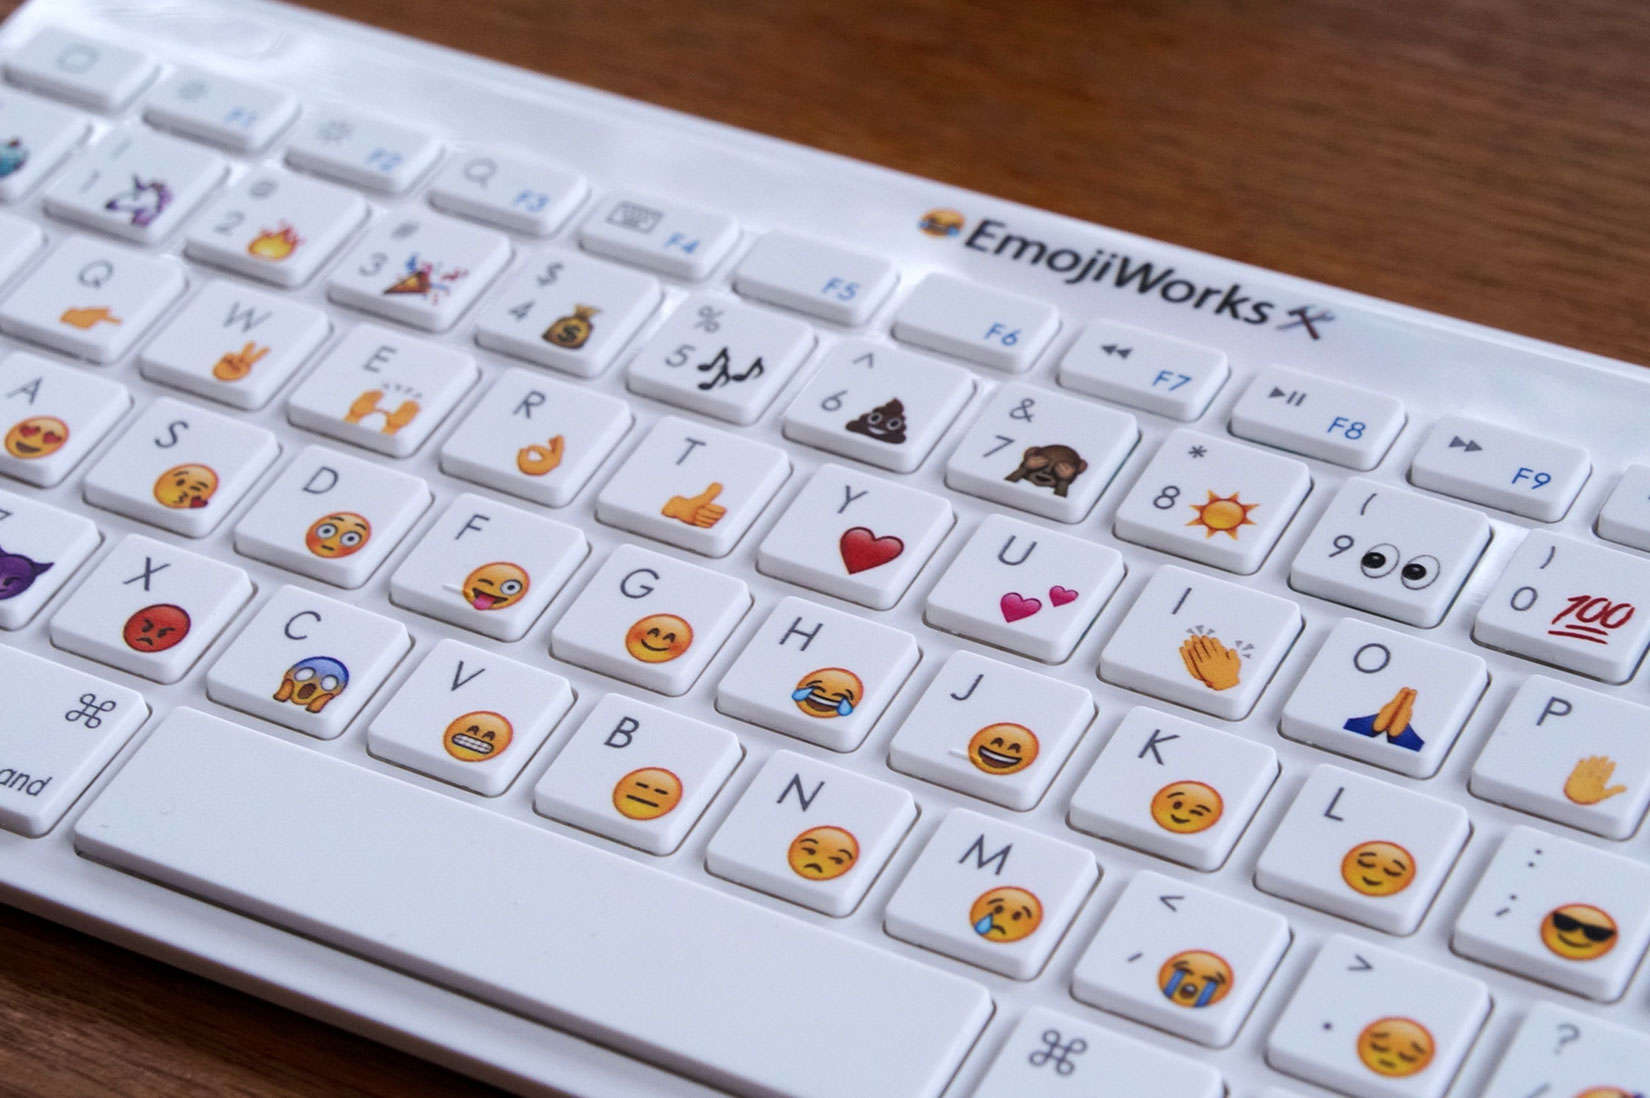 This keyboard from EmojiWorks is a quicker way to express your feelings via emoji.